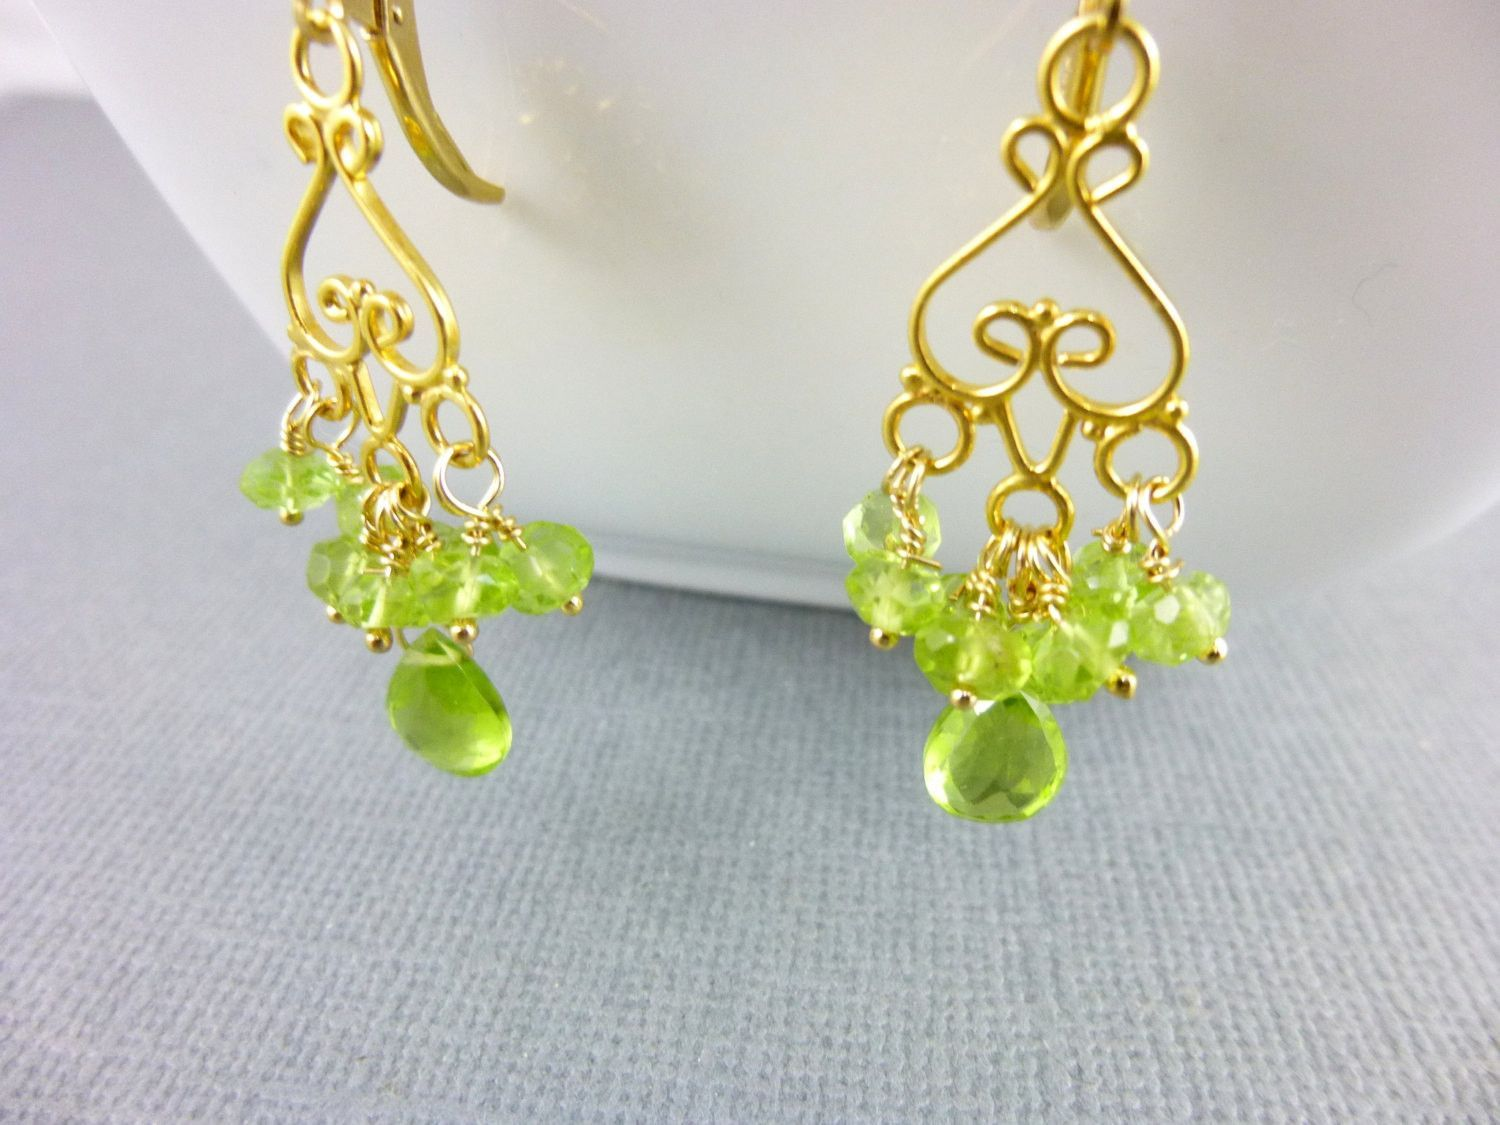 Peridot chandelier earrings wire wrapped peridot clusters 14k peridot chandelier earrings wire wrapped peridot clusters 14k gold fill chakra earrings mozeypictures Choice Image